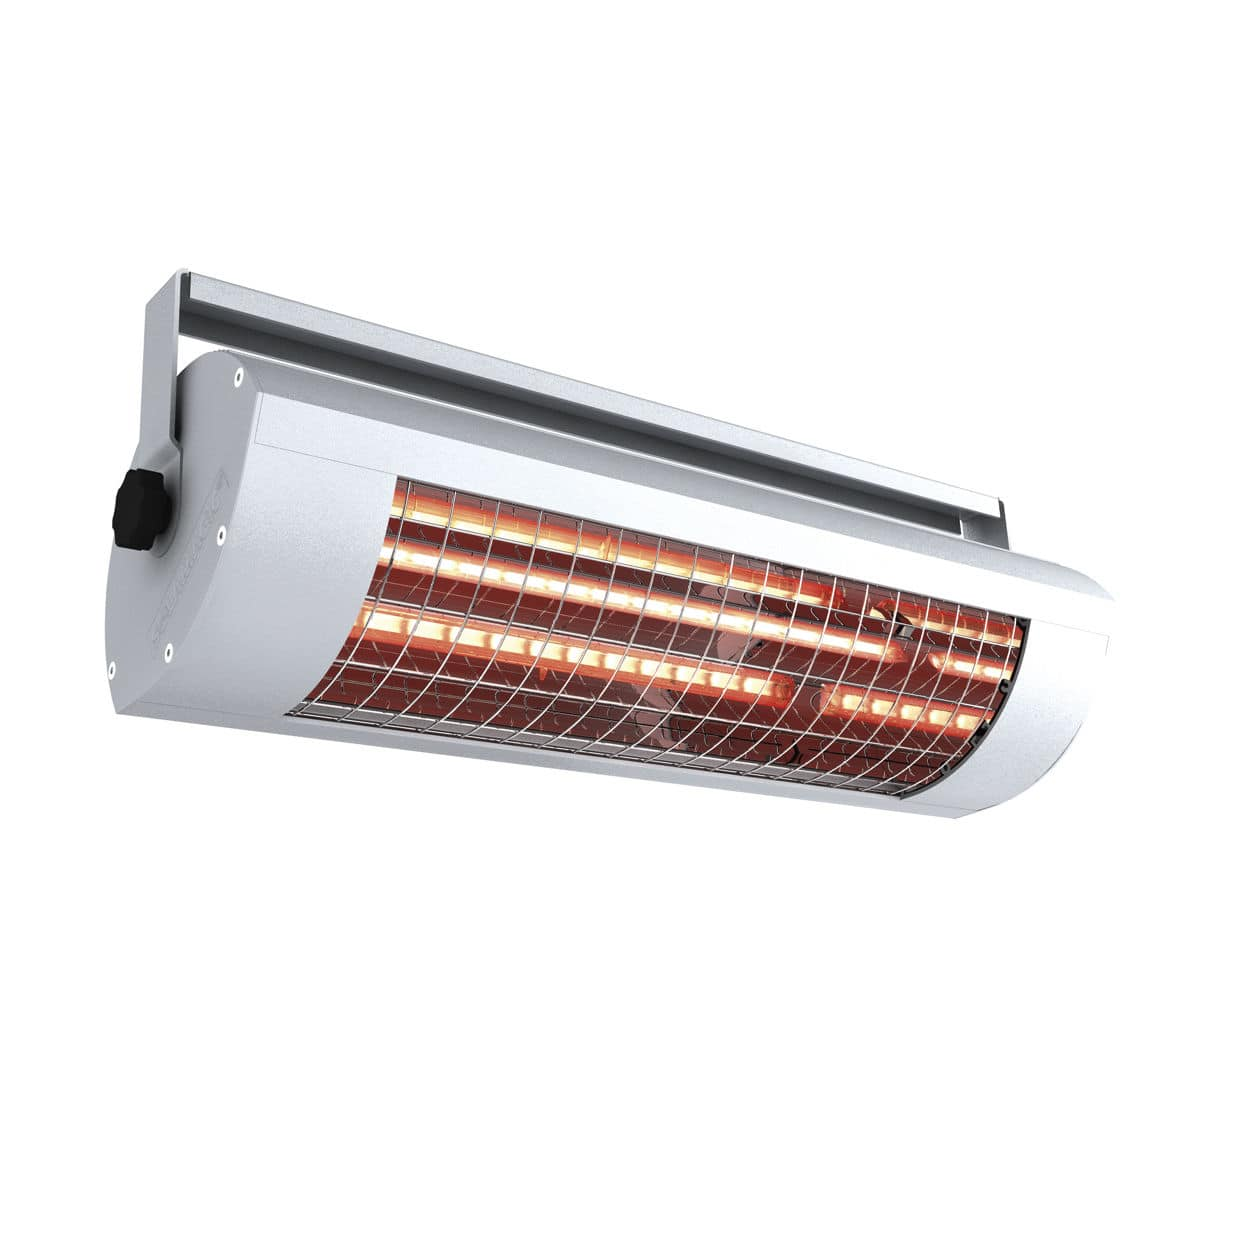 Wall-mounted infrared heater / ceiling / electric / commercial ...